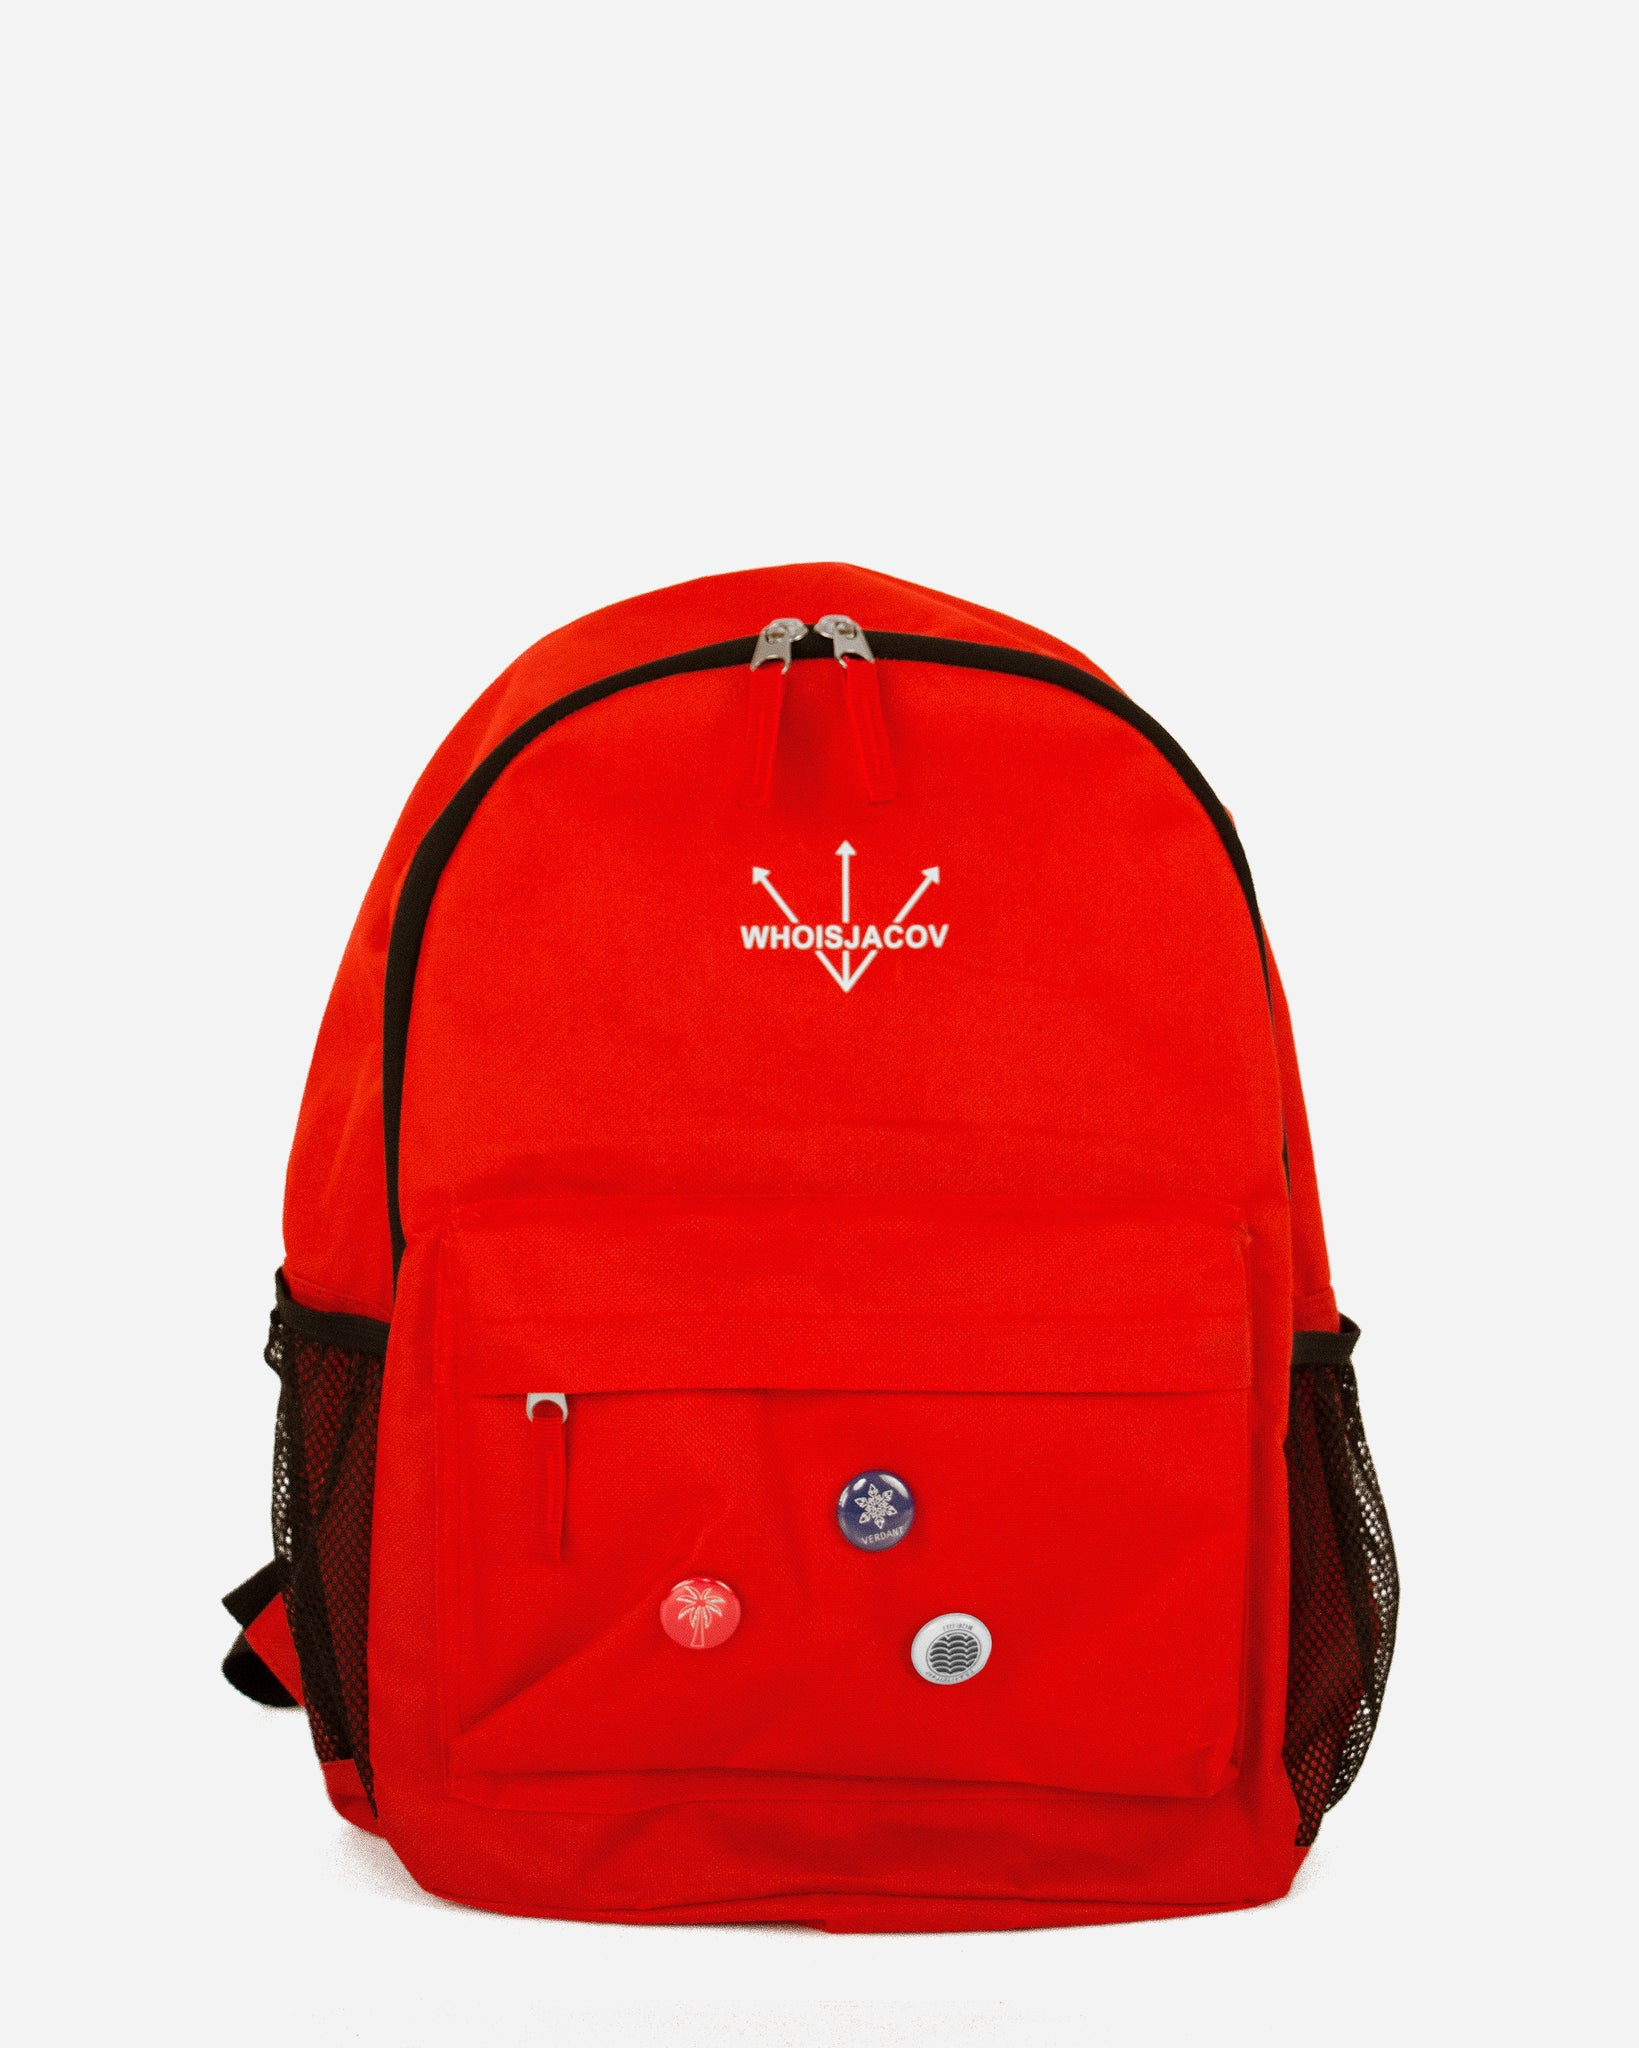 RED DAYPACK